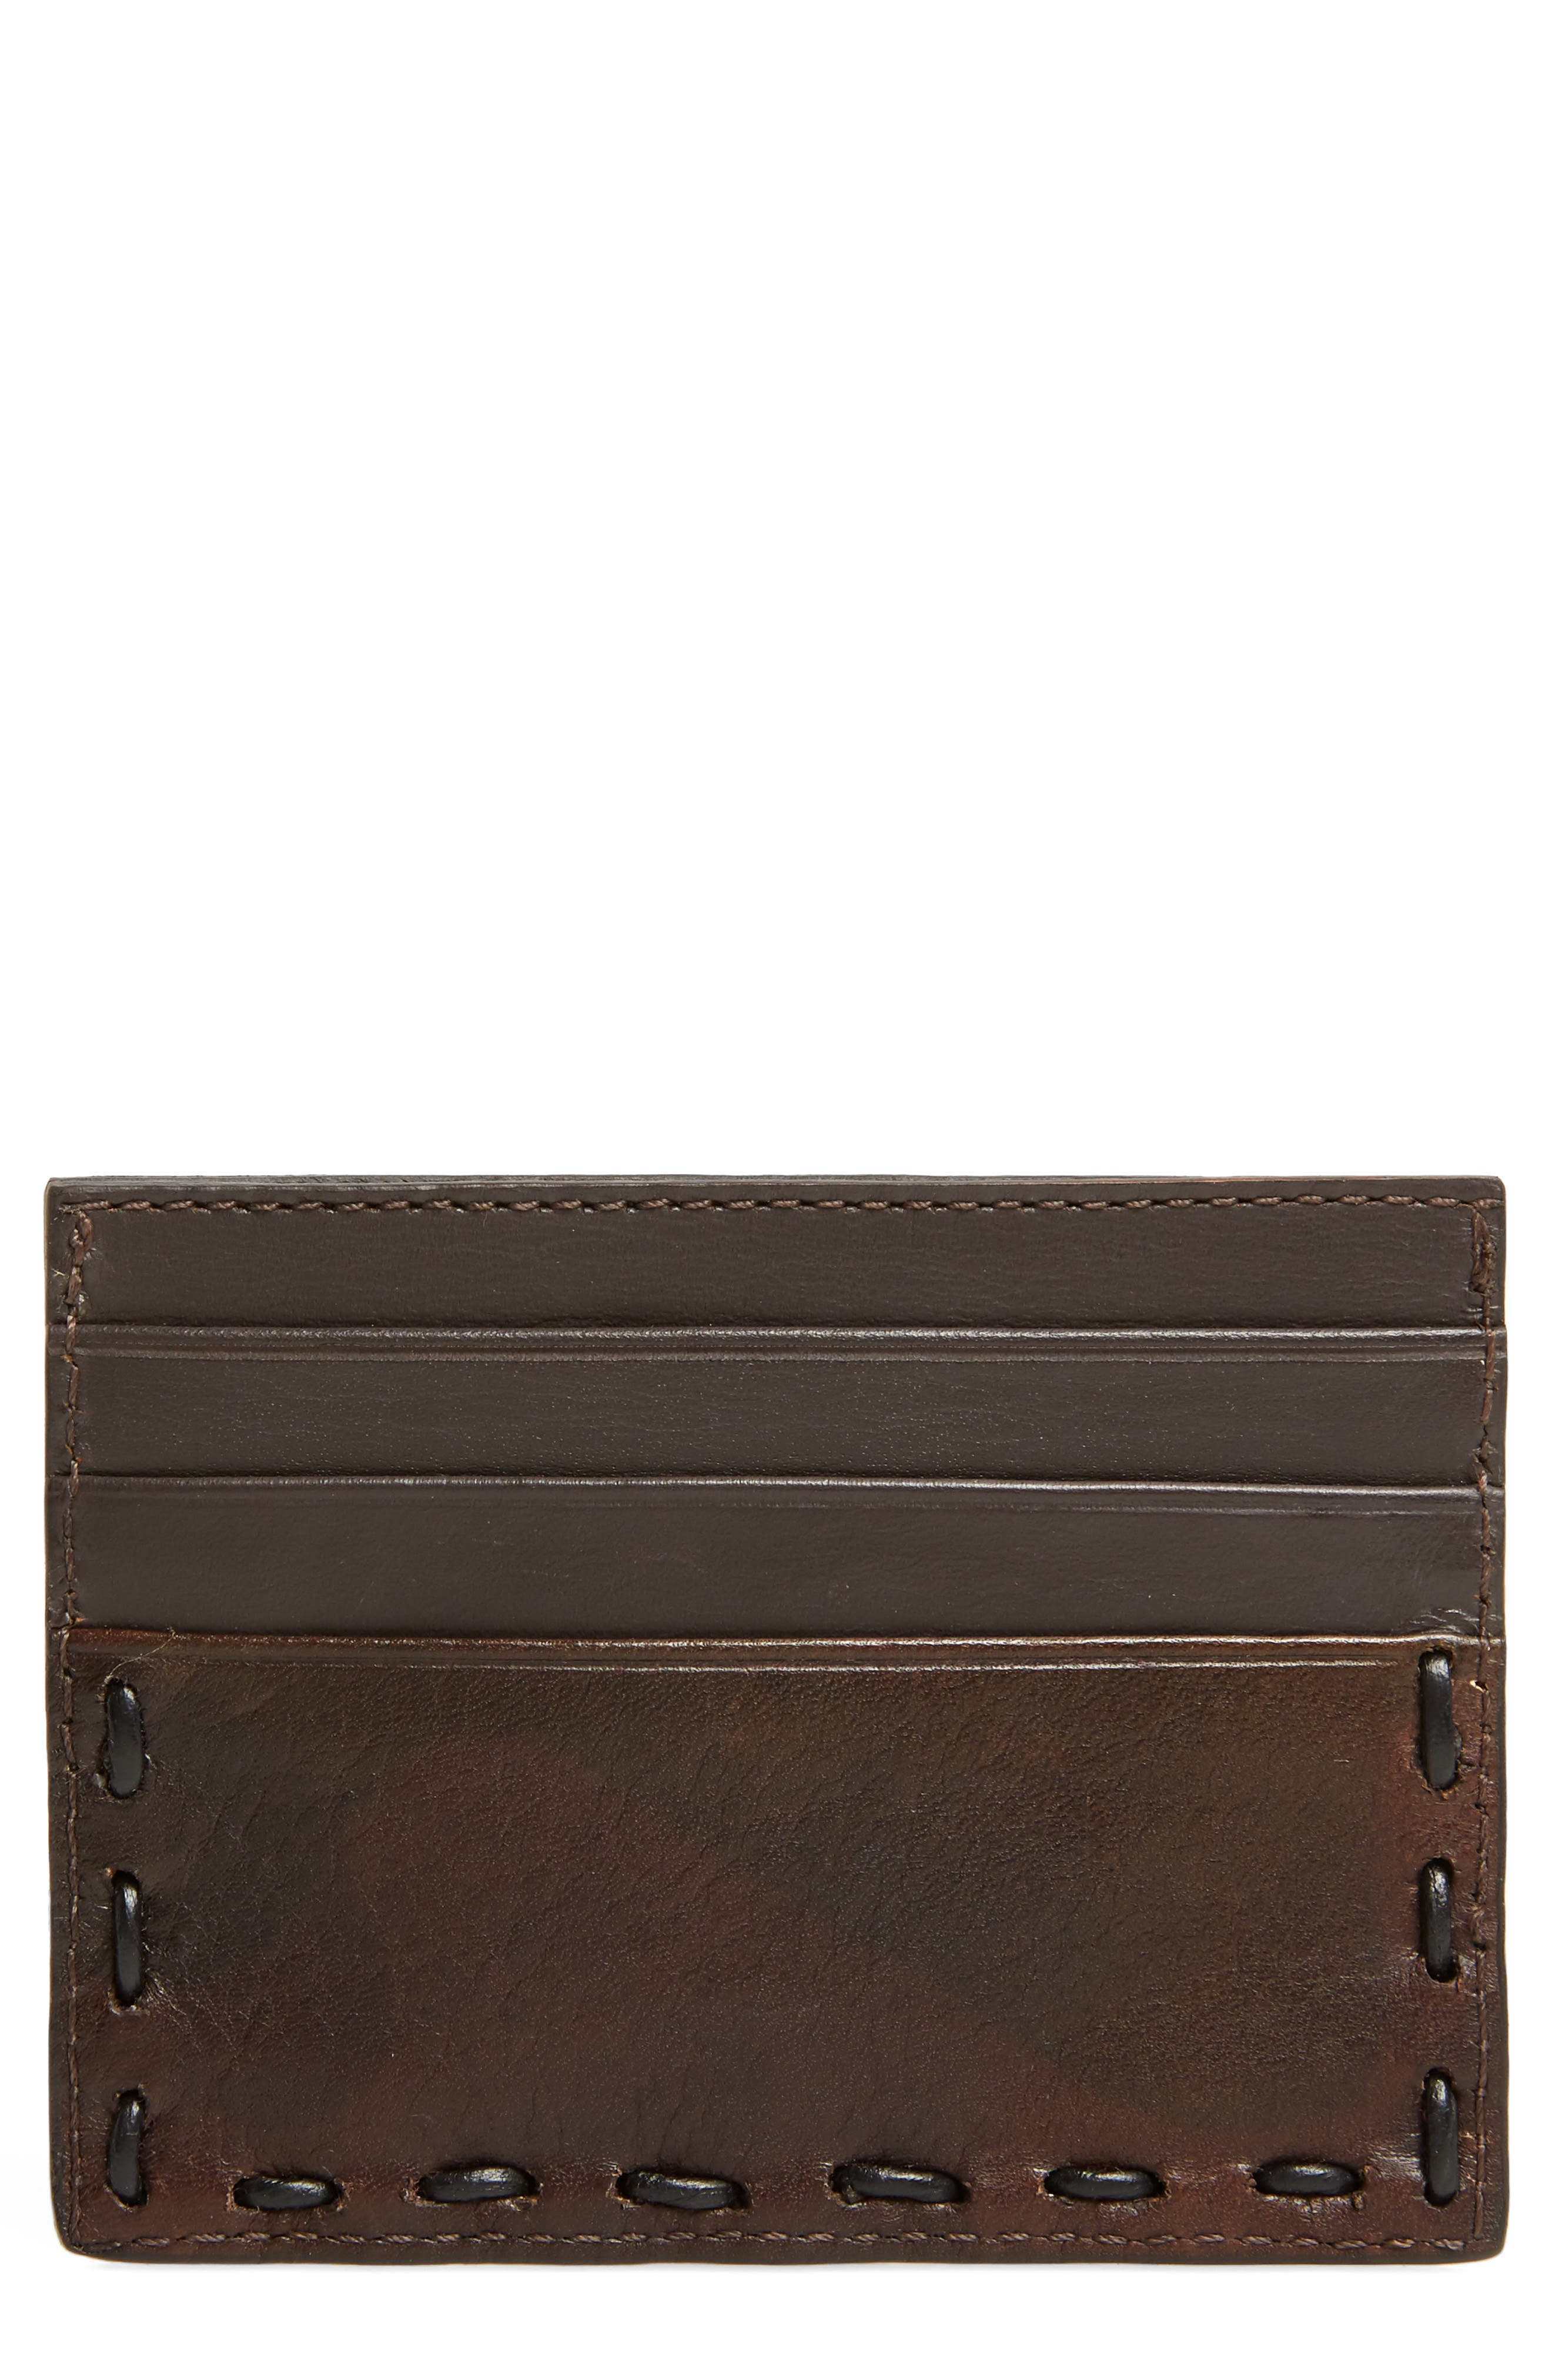 Pickstitched Leather Card Case,                         Main,                         color, 206